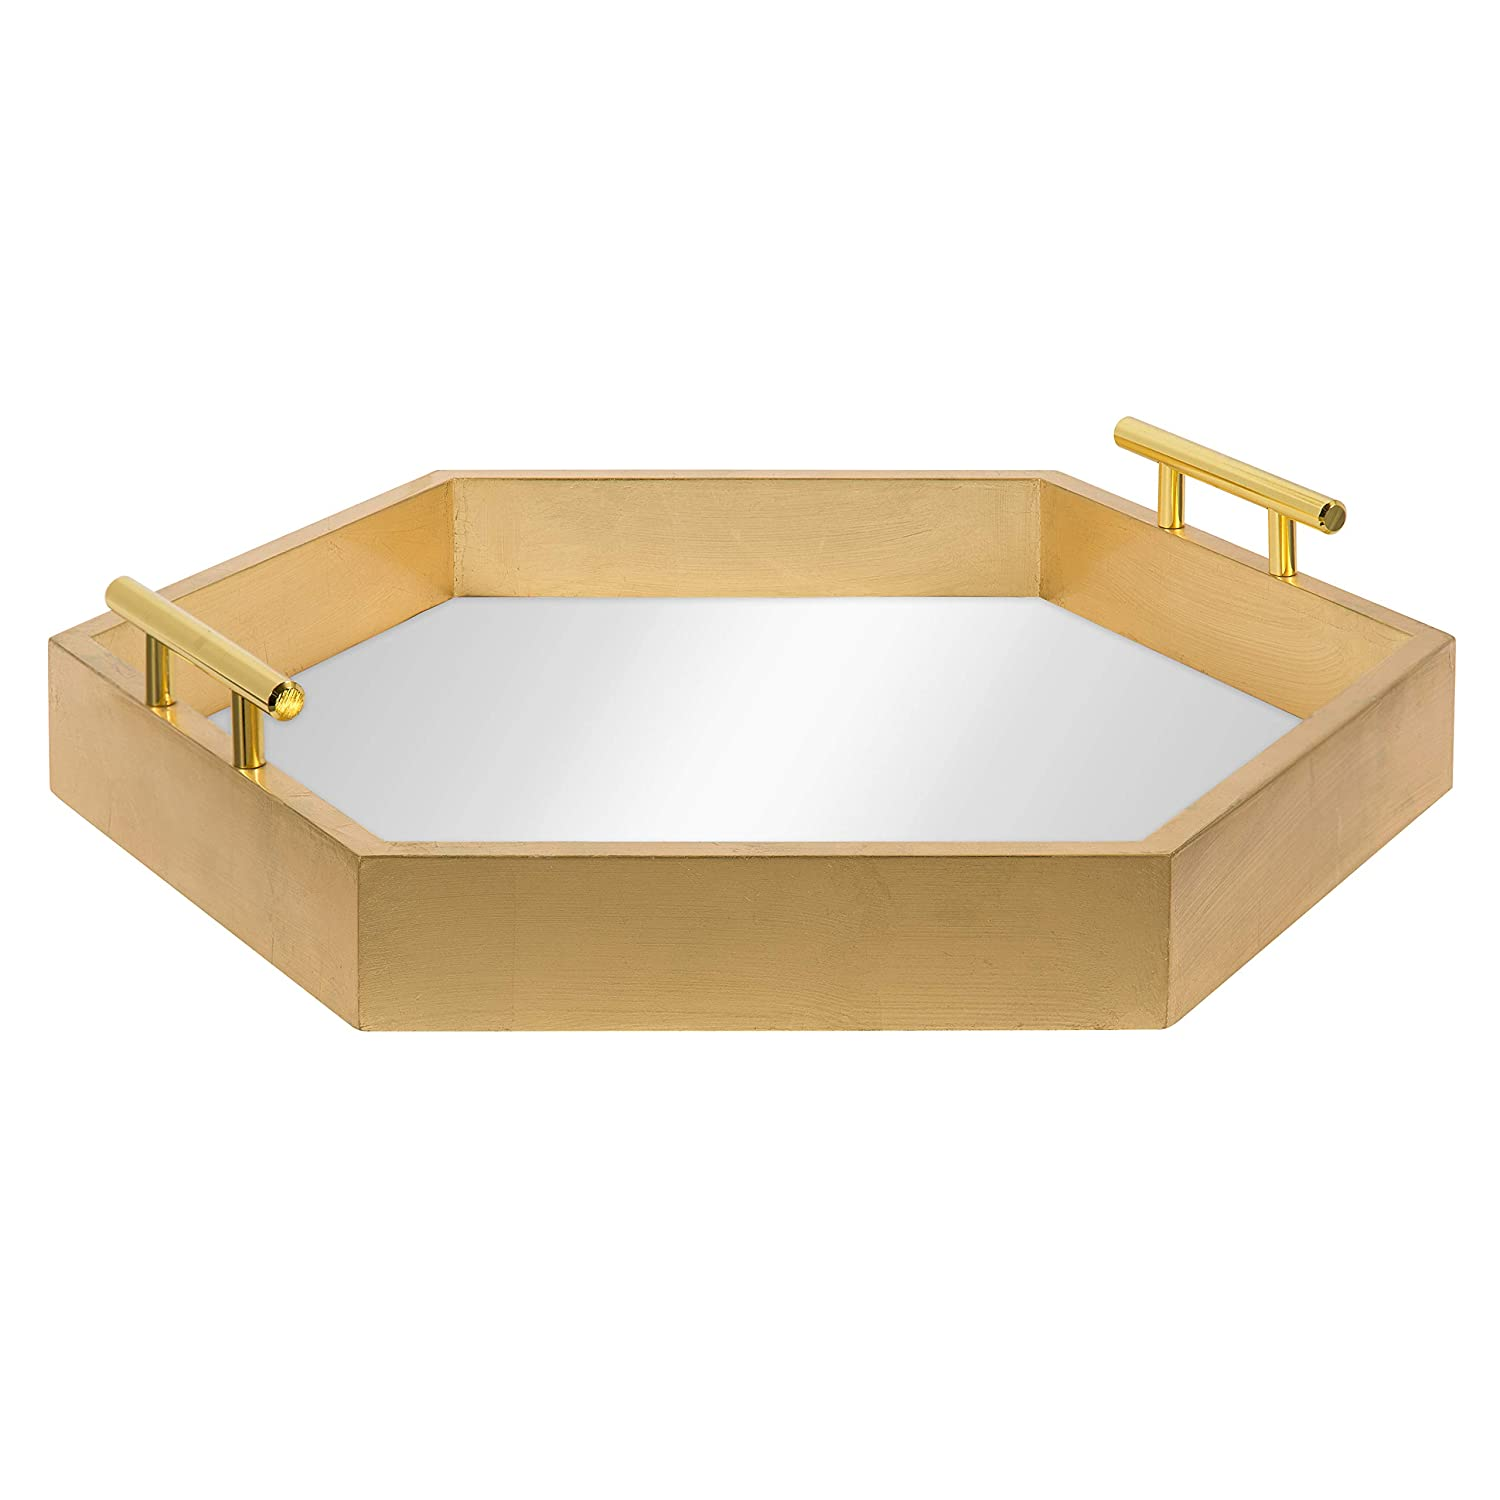 Kate and Laurel Lipton Hexagon Decorative Tray with Metal Handles, Gold Mirrored Uniek LiptonHex